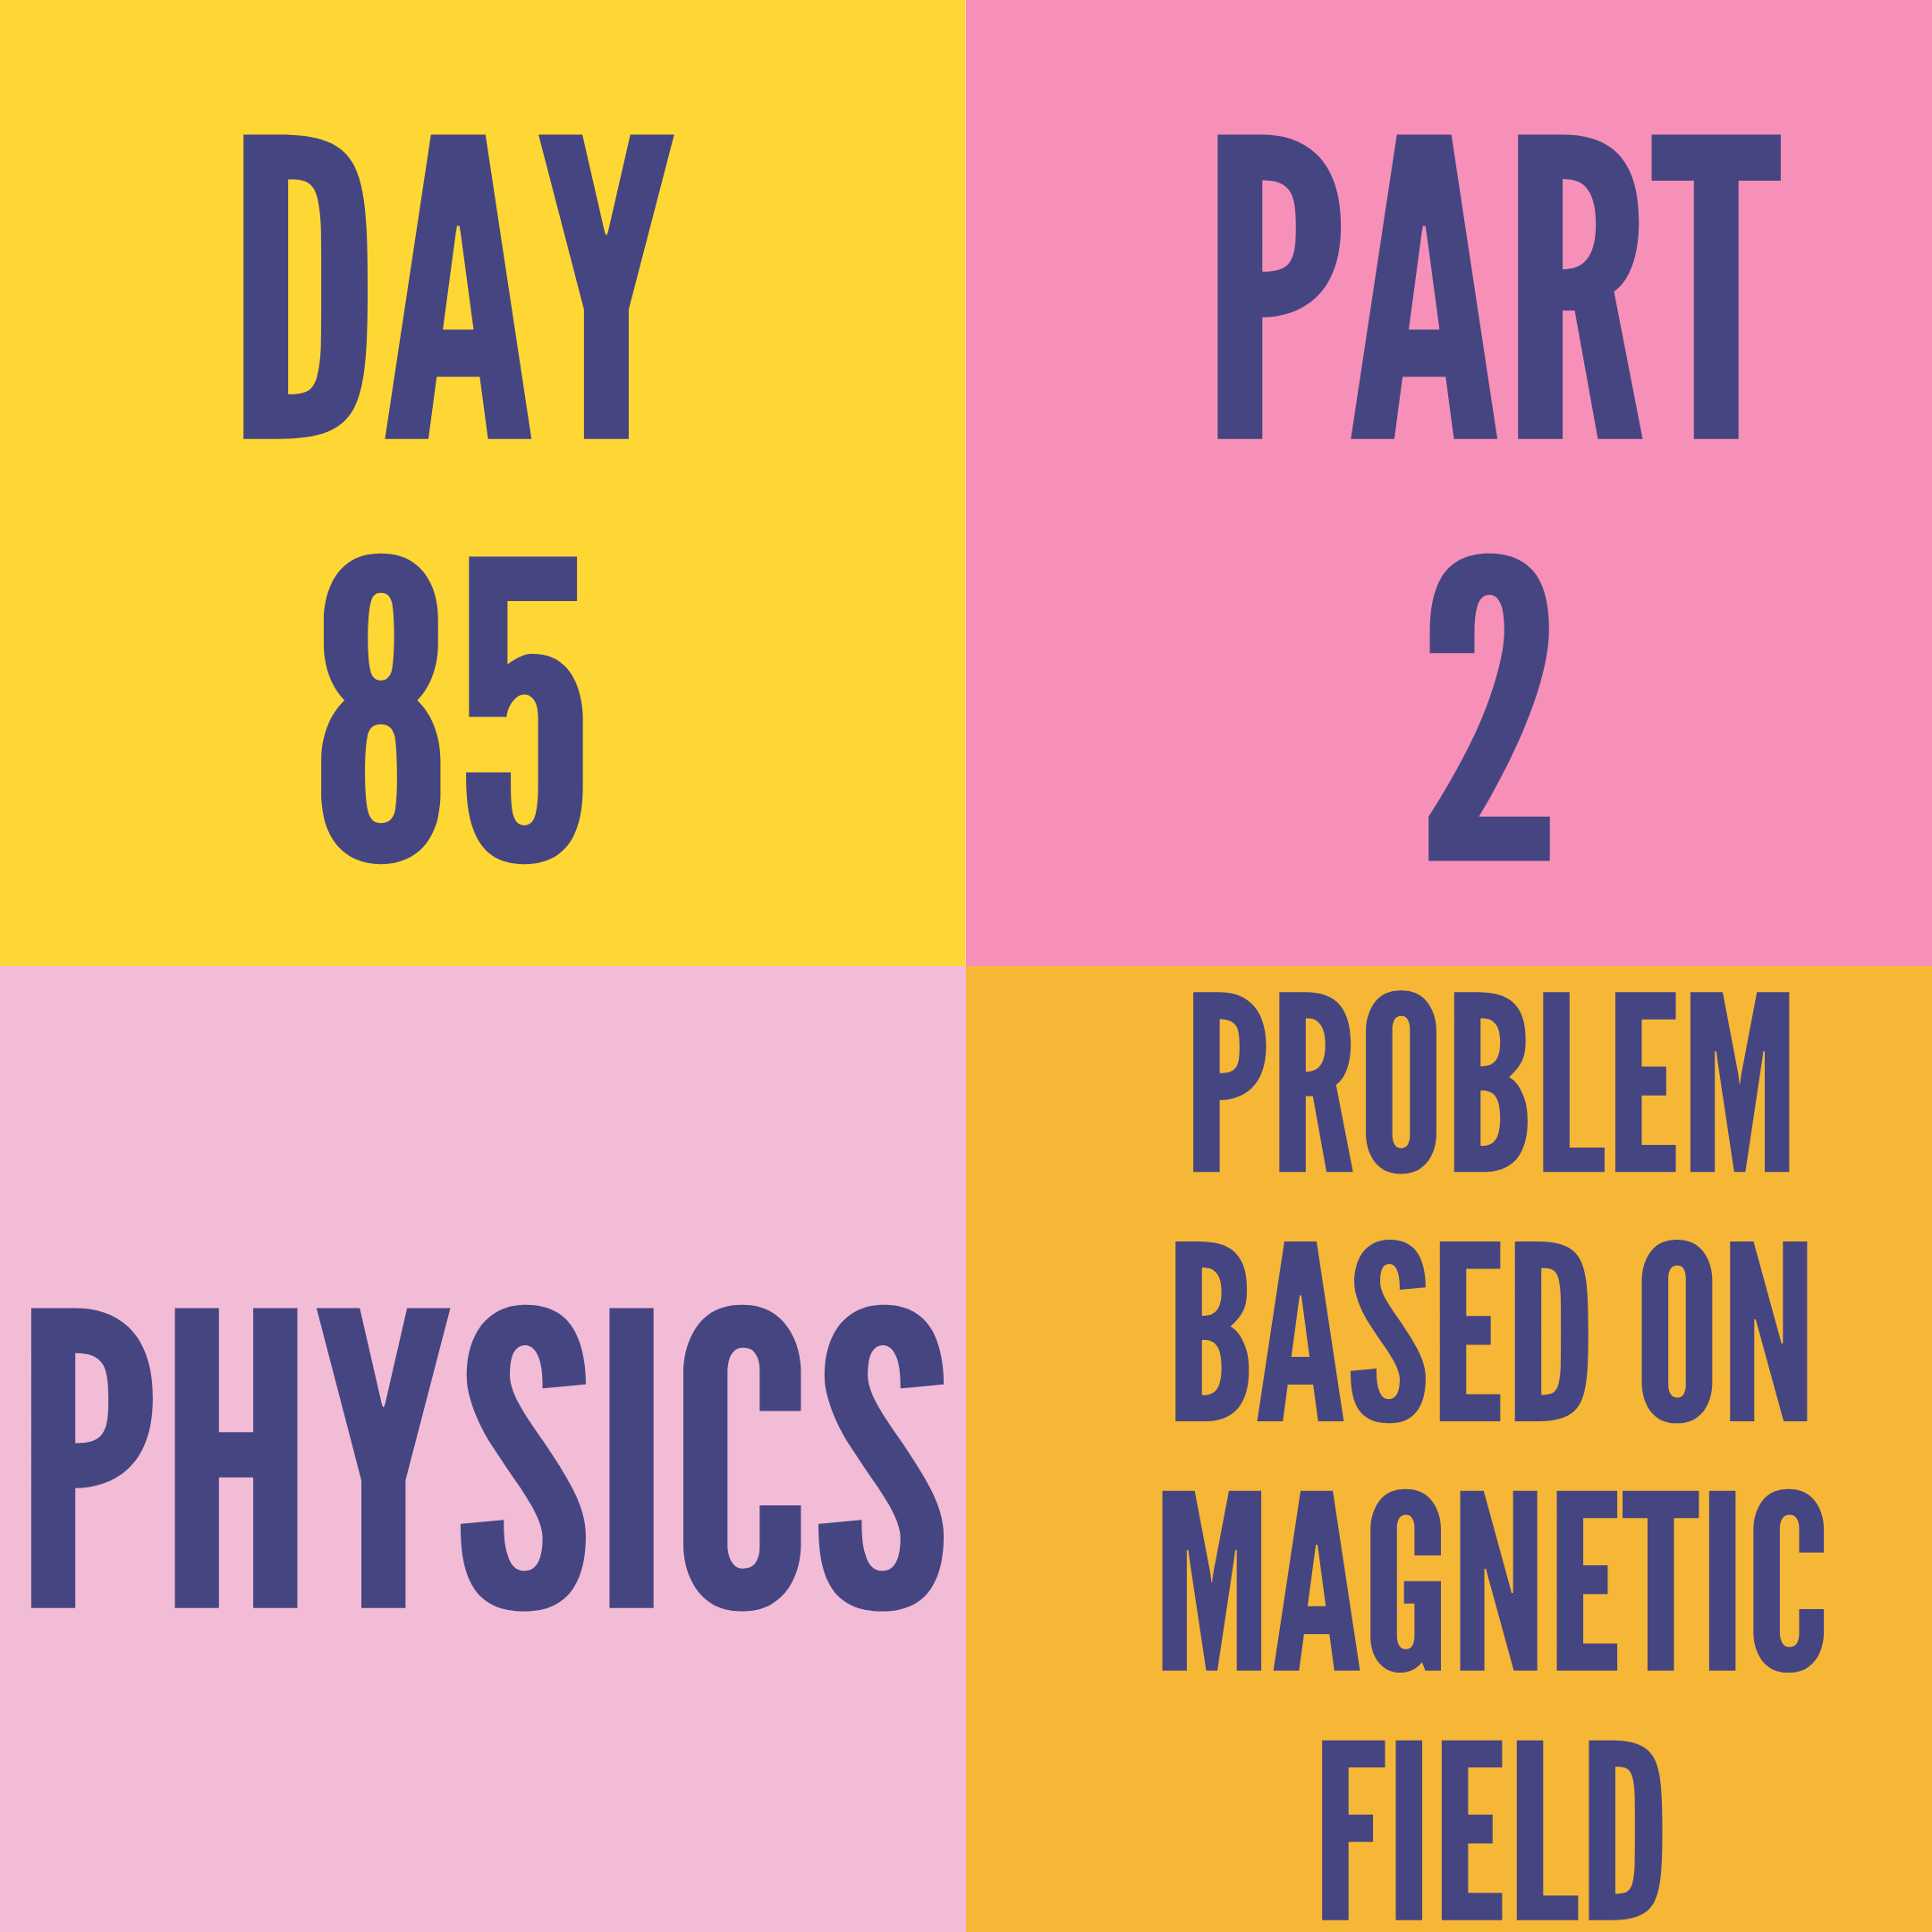 DAY-85 PART-2 PROBLEM BASED ON MAGNETIC FIELD